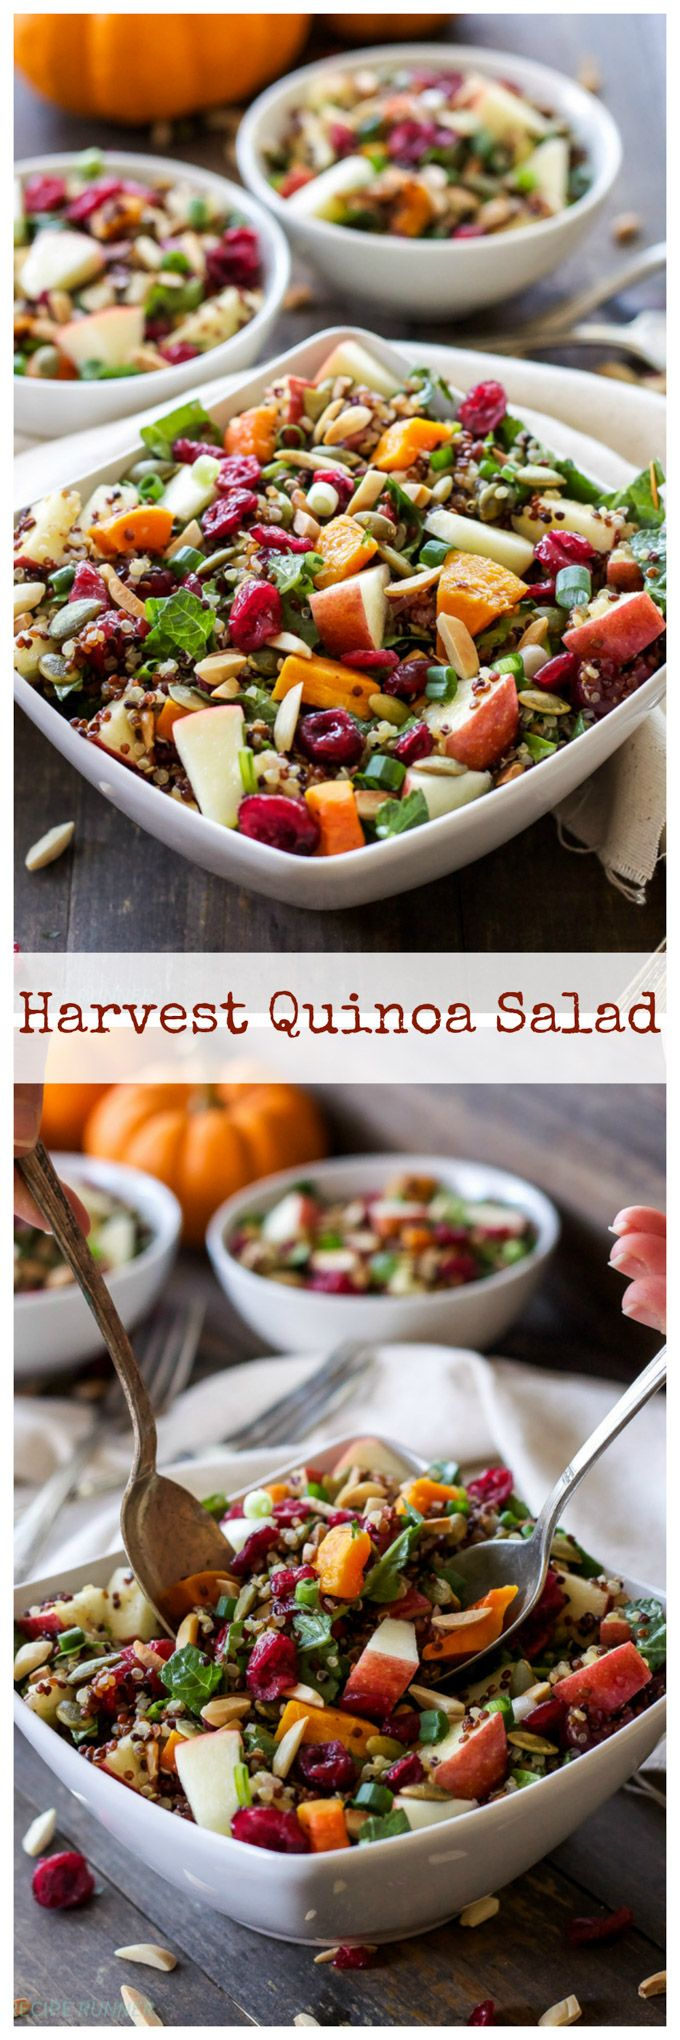 Harvest Quinoa Salad | This gluten-free, vegan quinoa salad is full of fall…